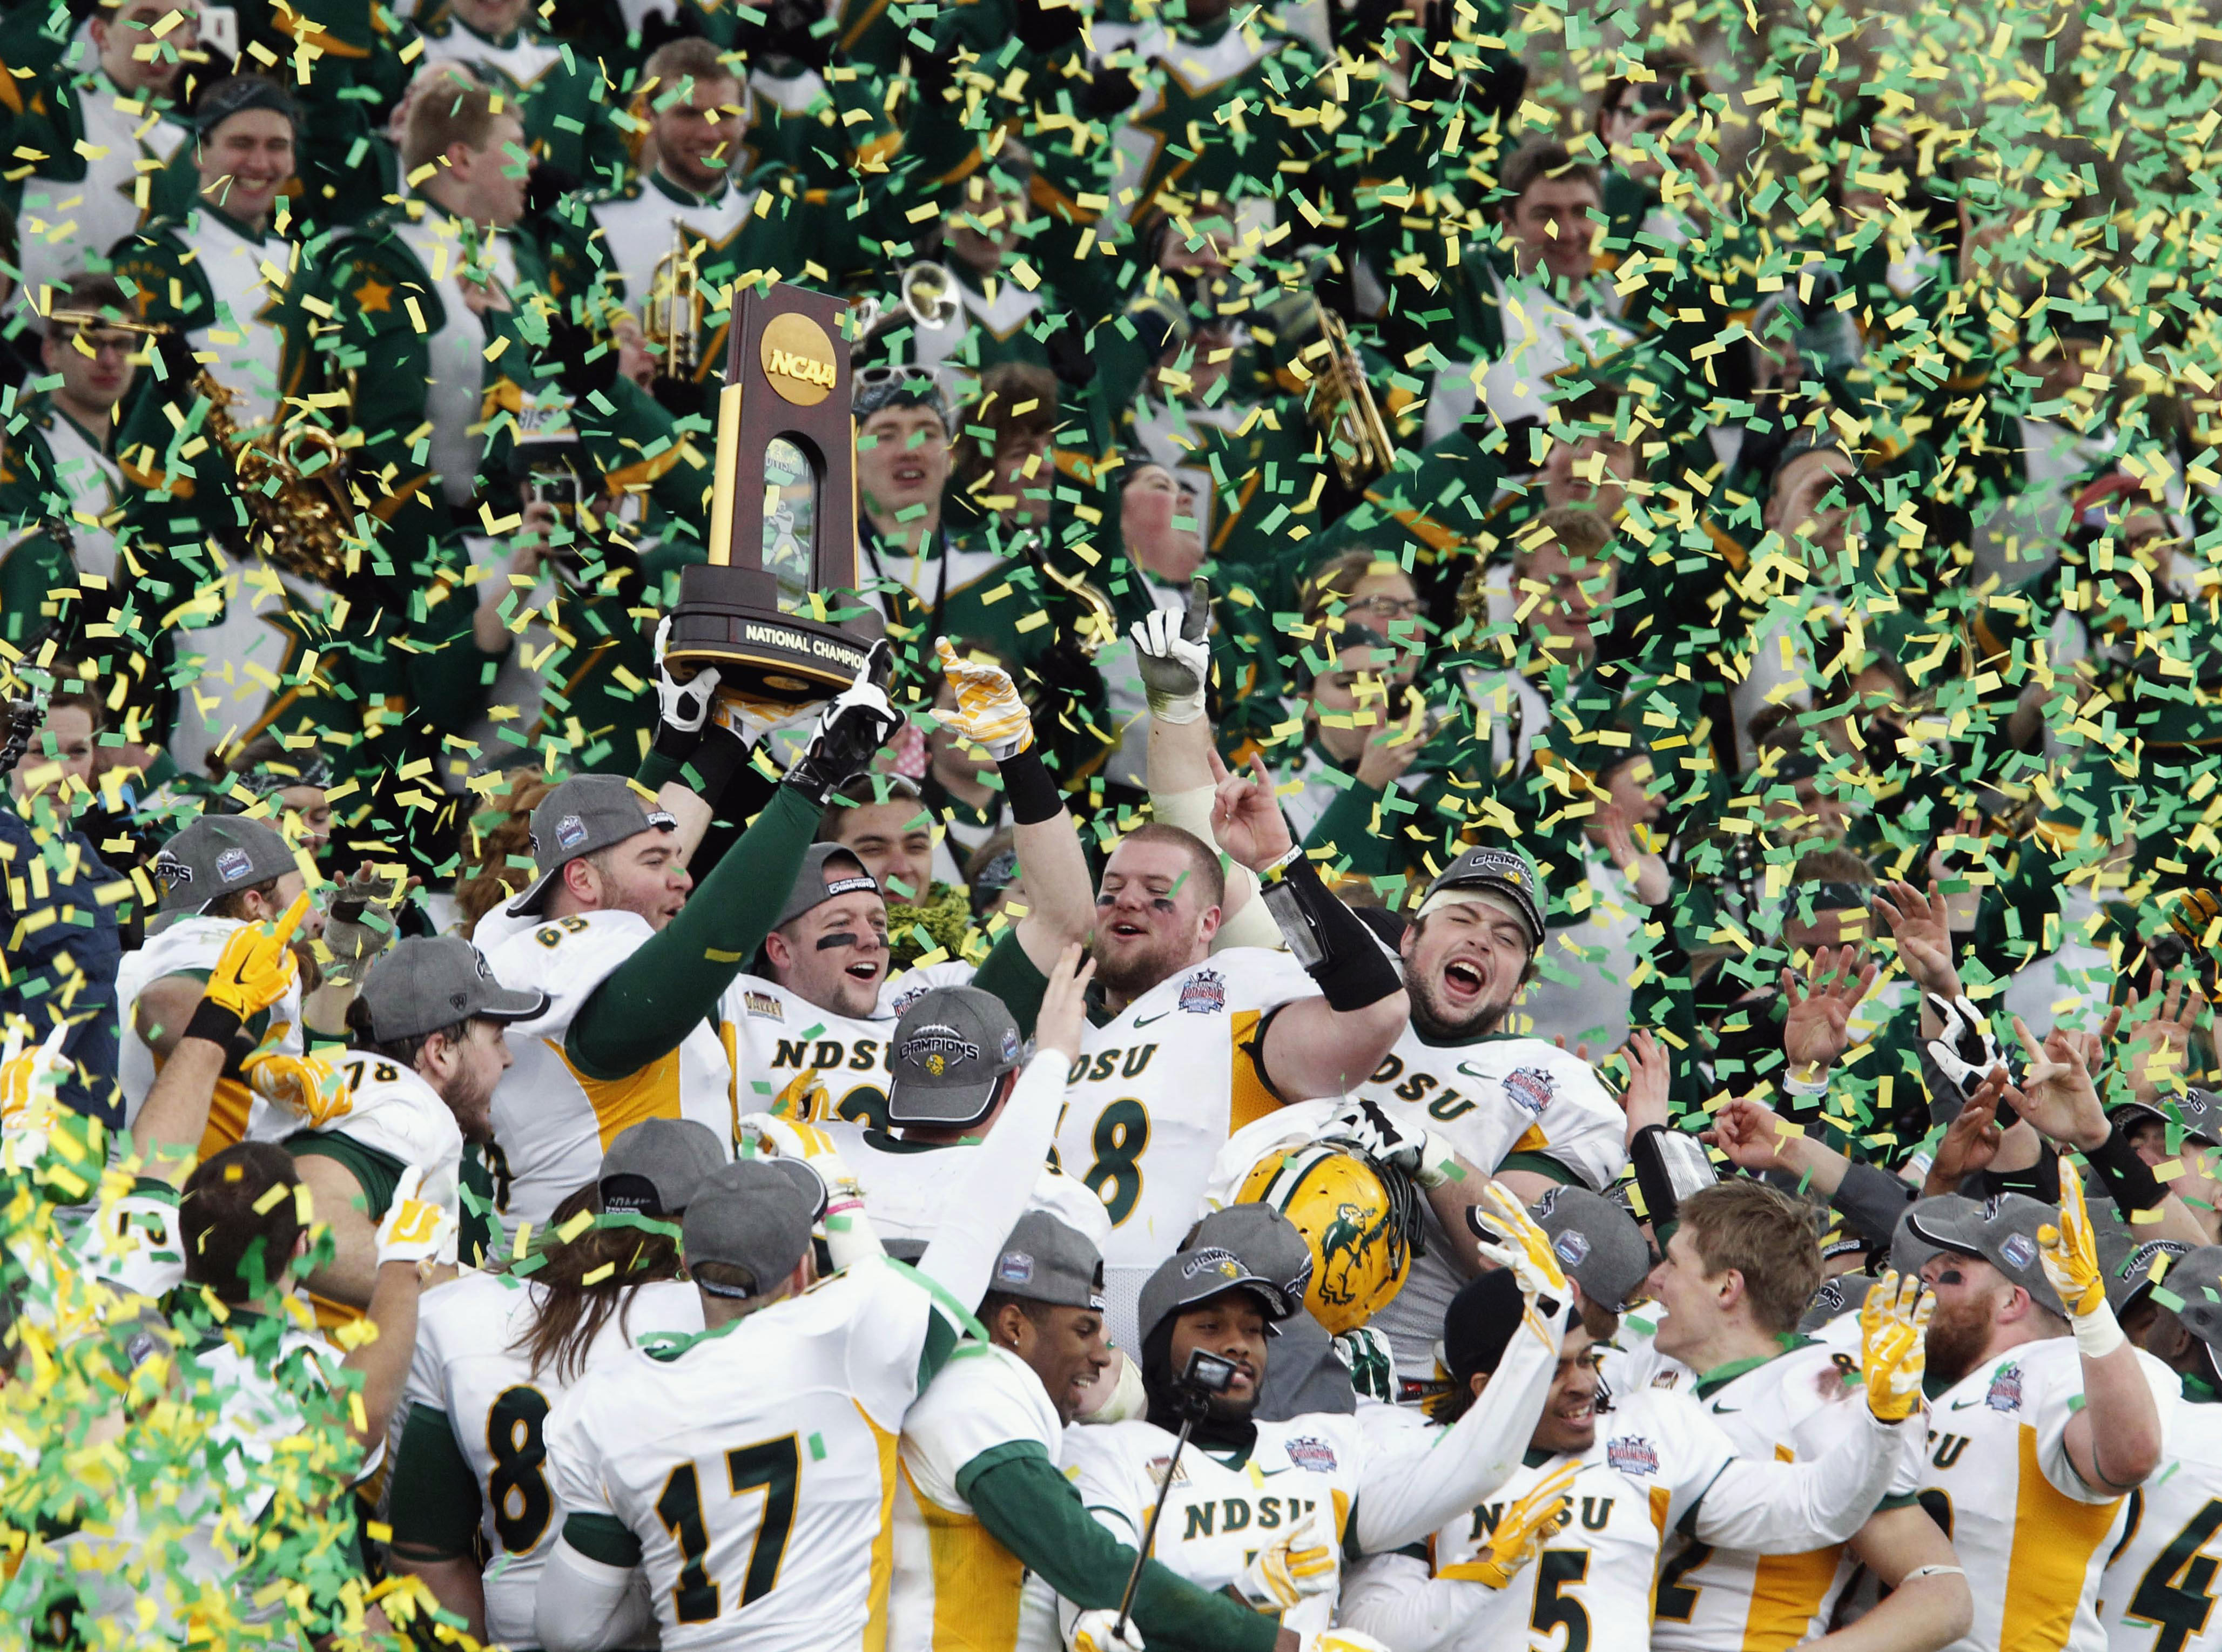 FILE - In this Jan. 10, 2015 file photo, members of the North Dakota State football team hold the championship trophy after their 29-27 win over Illinois State in the FCS Championship NCAA college football game in Frisco, Texas.  NDSU says it will start p